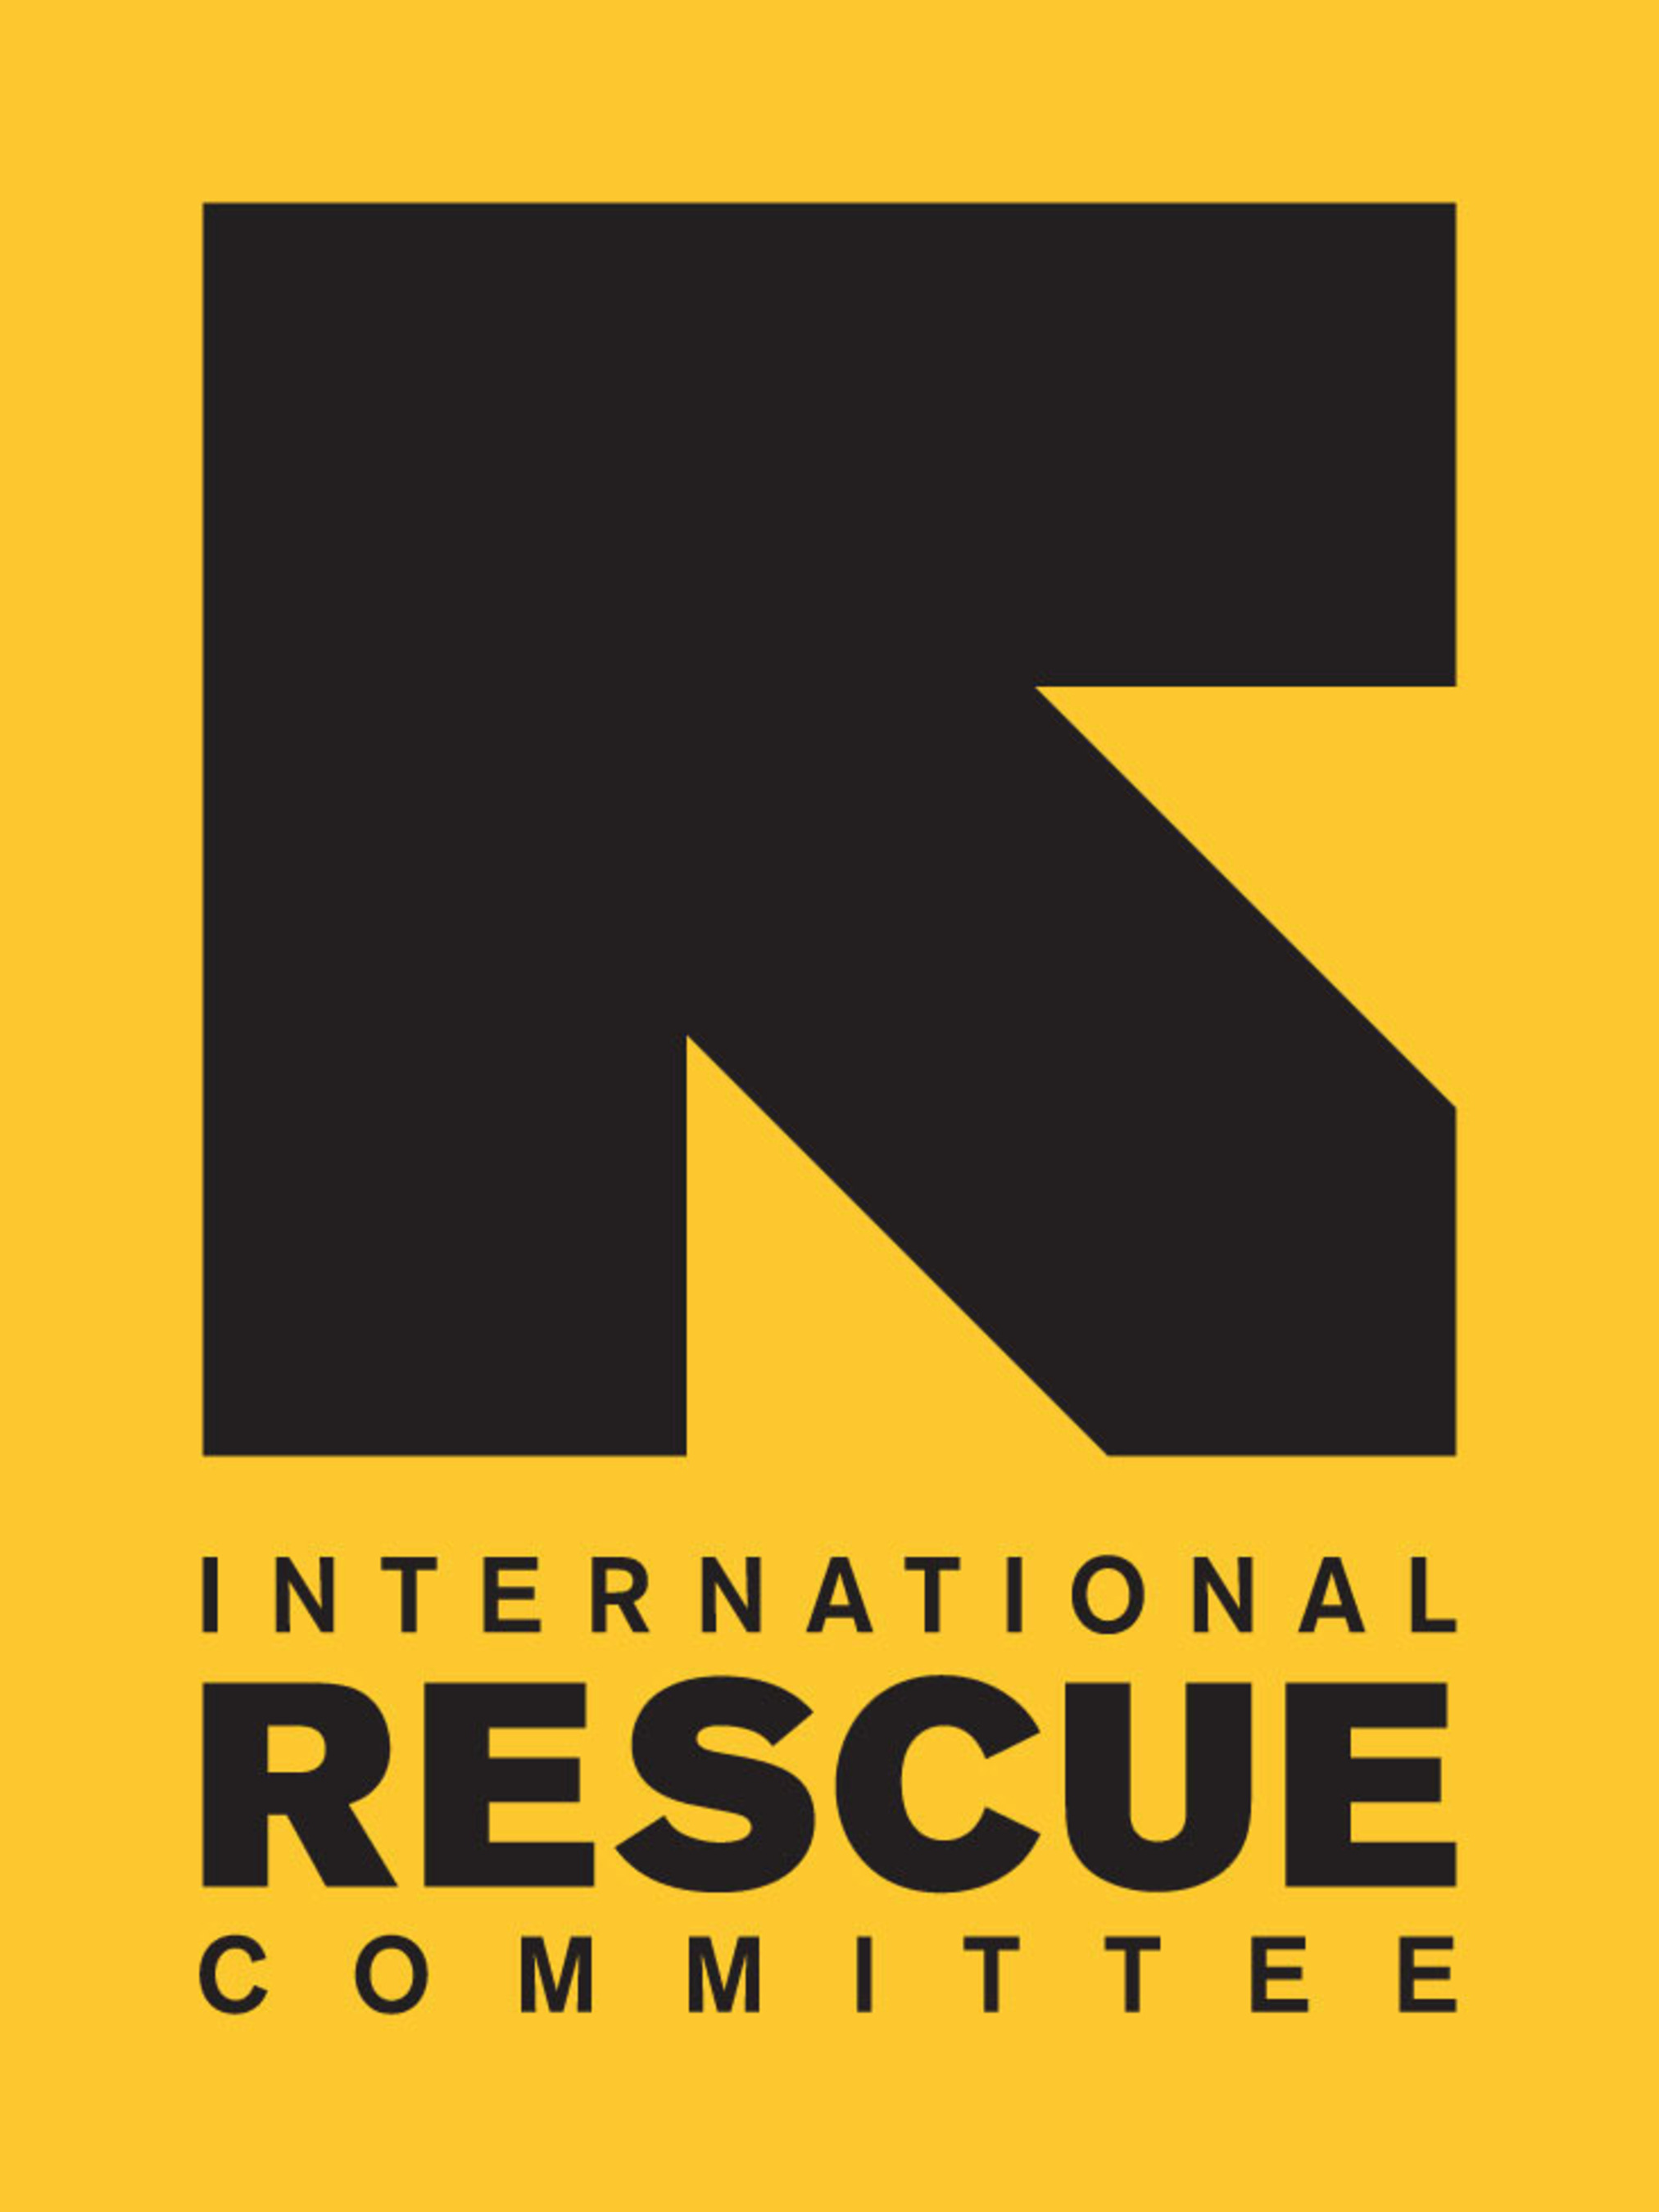 International Rescue Committee.